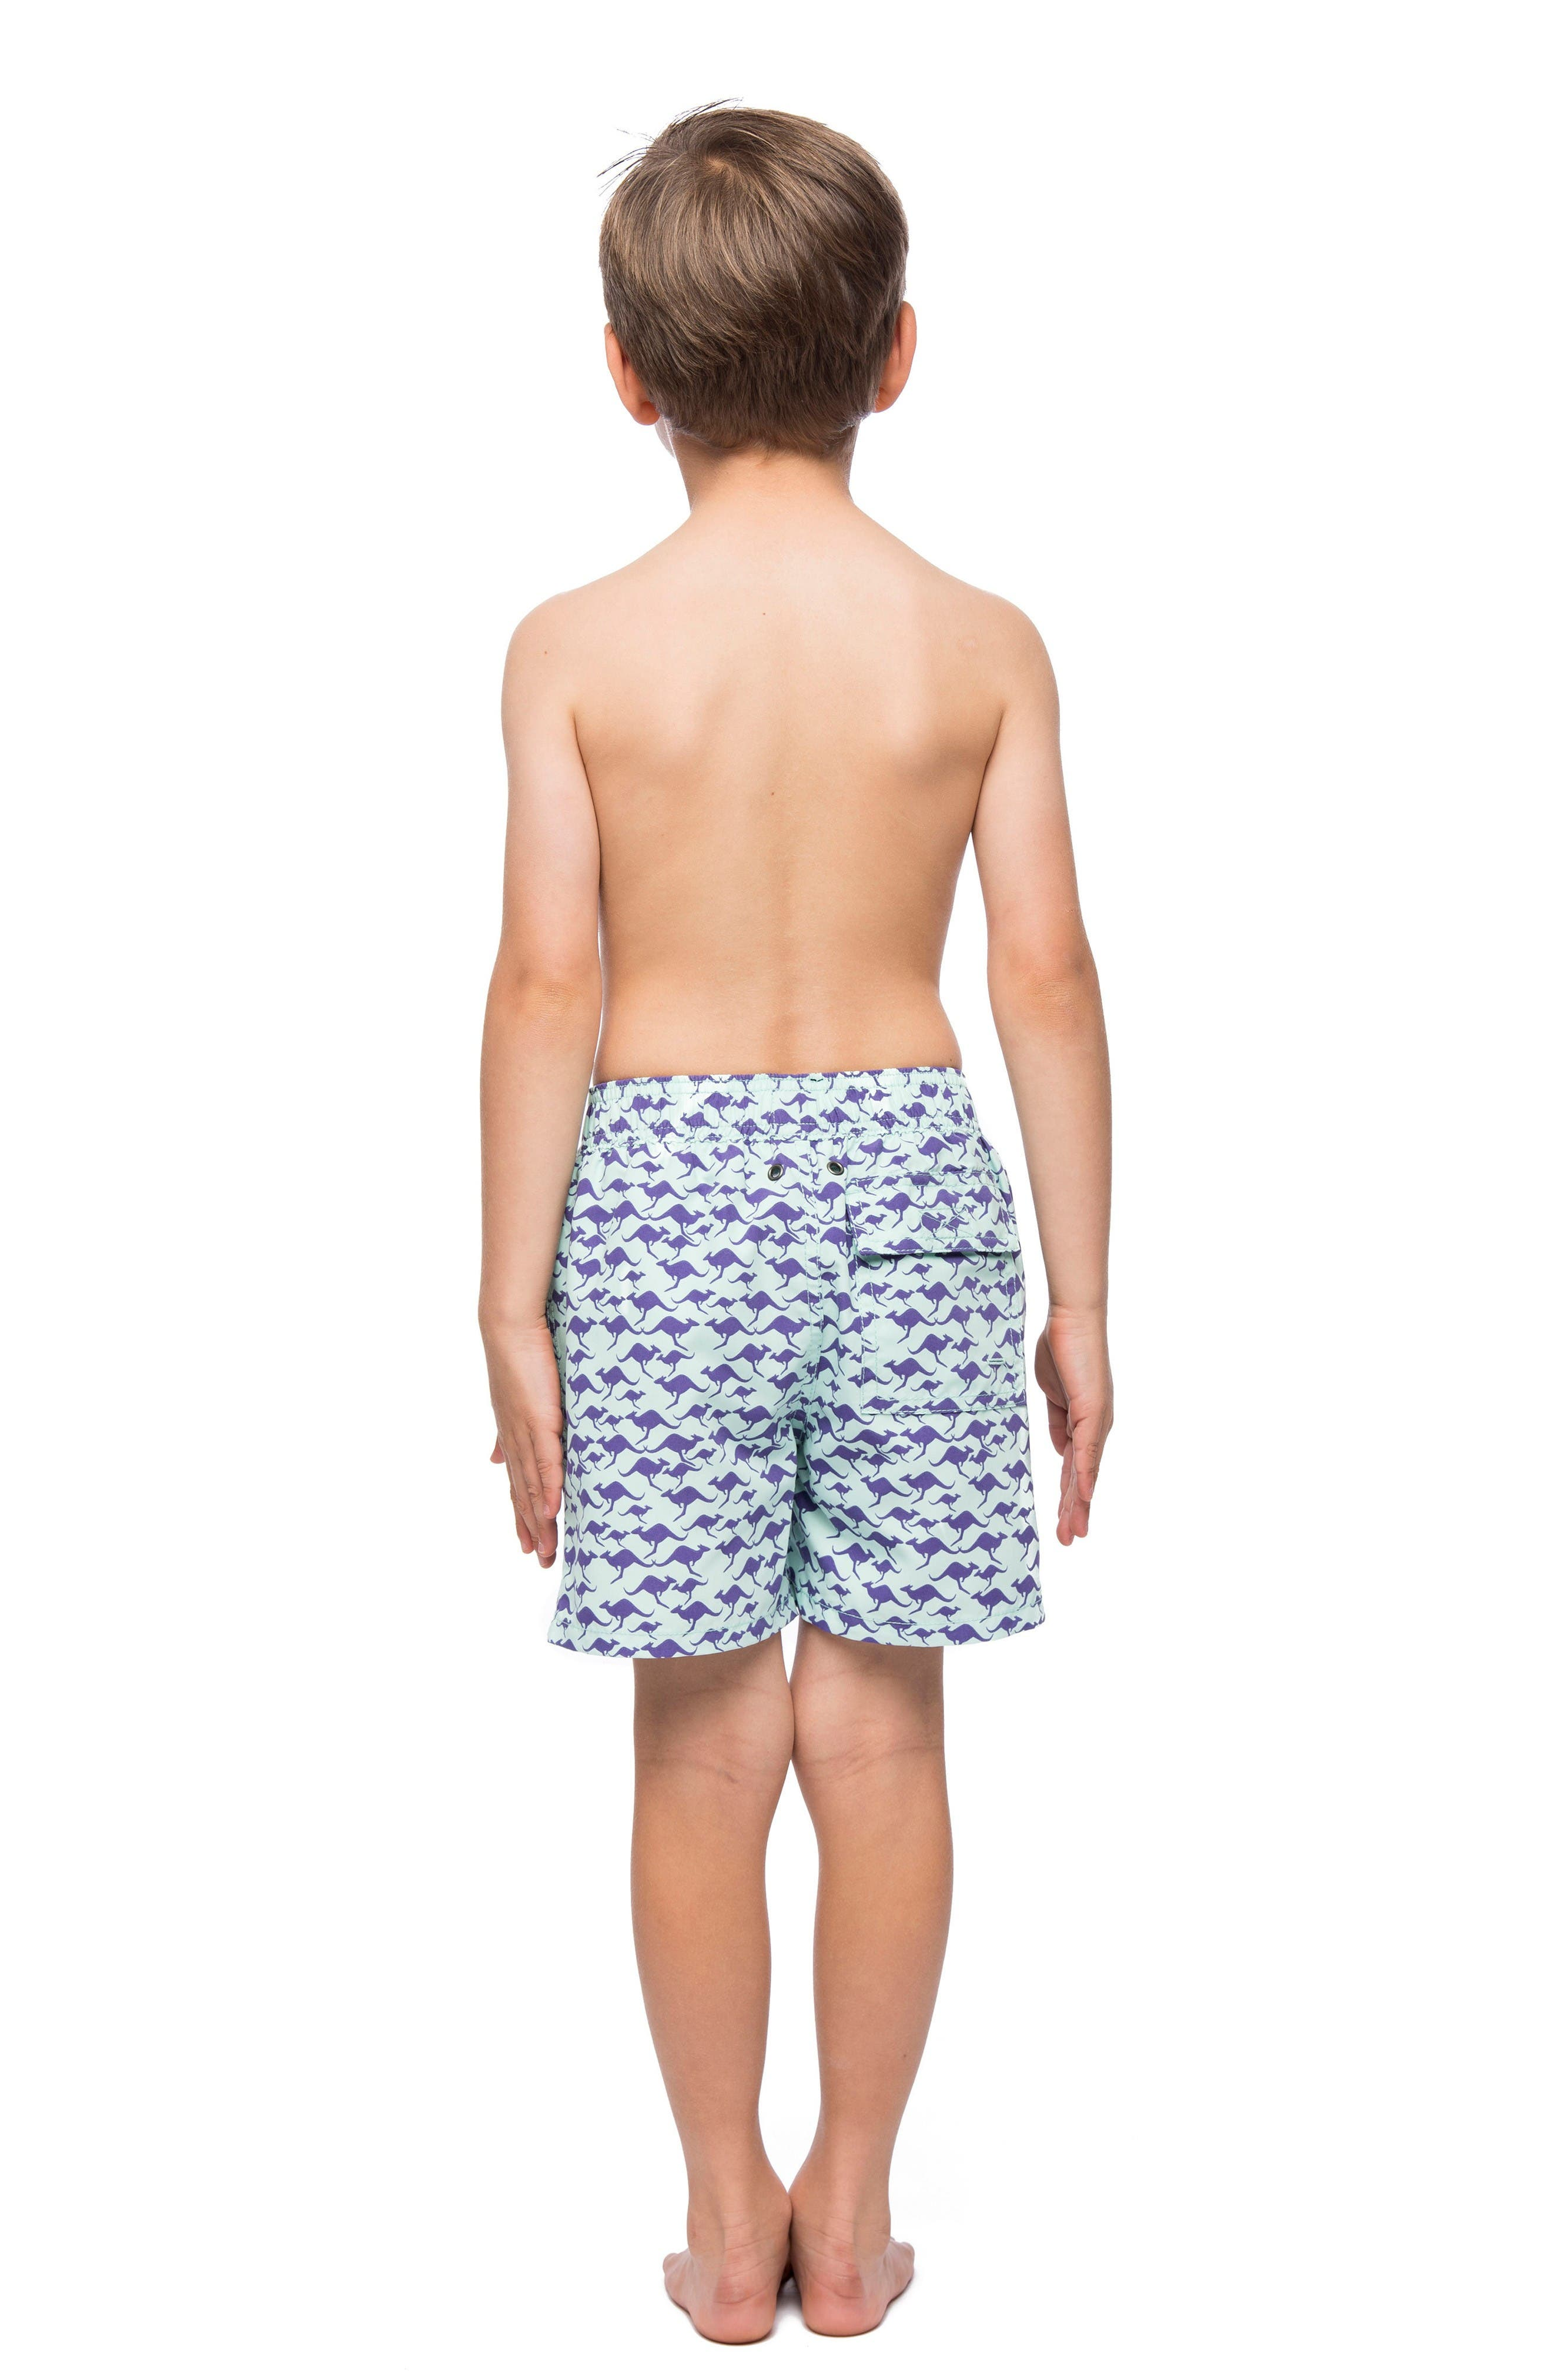 Alternate Image 2  - Tom & Teddy Kangaroo Swim Trunks (Toddler Boys, Little Boys & Big Boys)